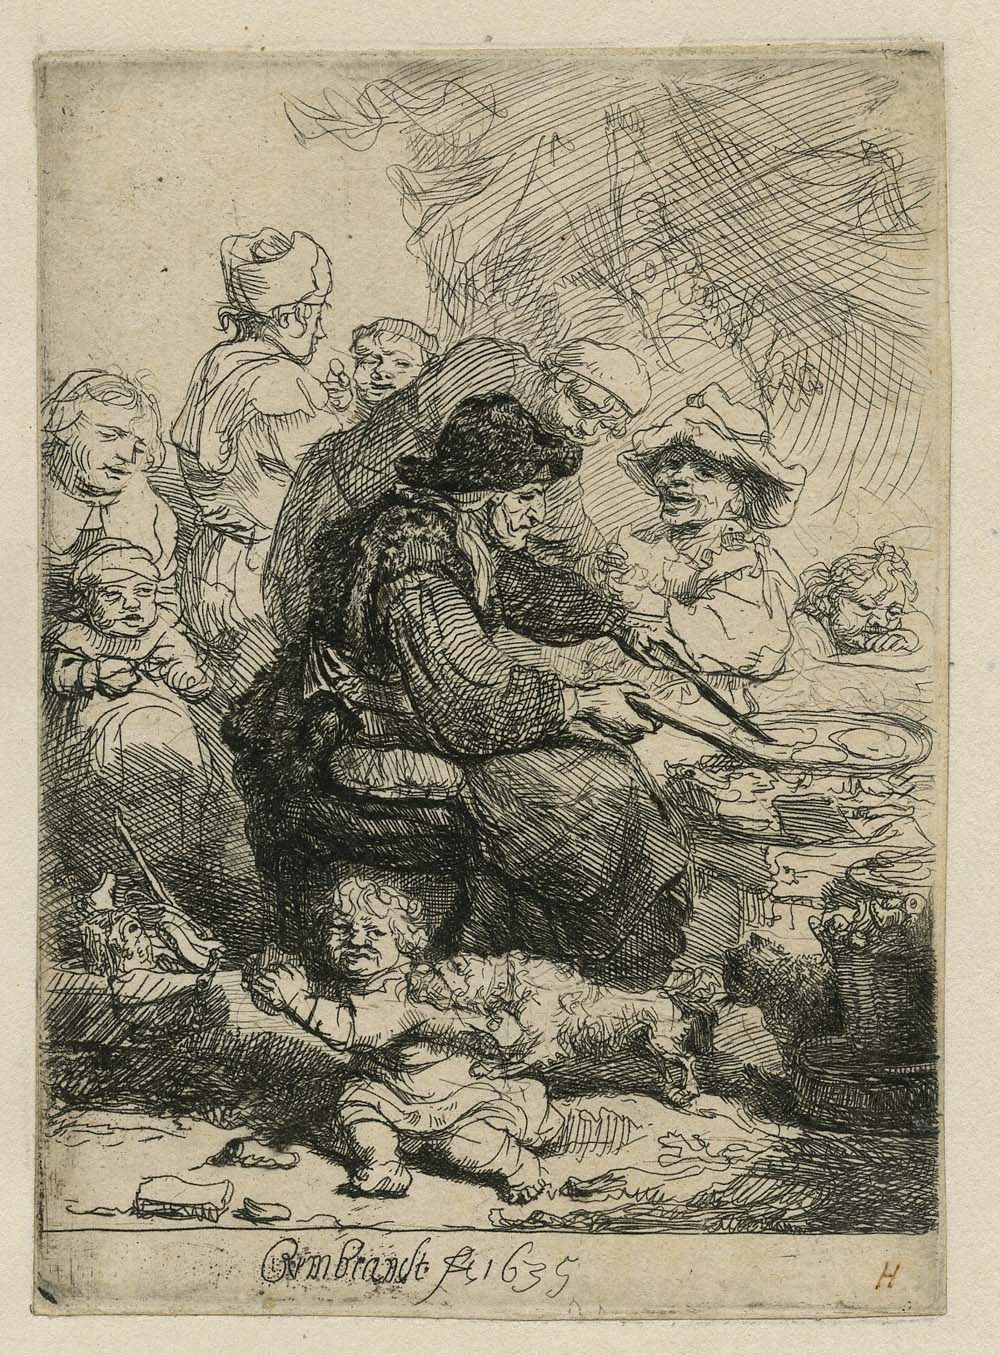 an etching by Rembrandt of a woman frying pancakes in a frying pan surrounded by hungry faces